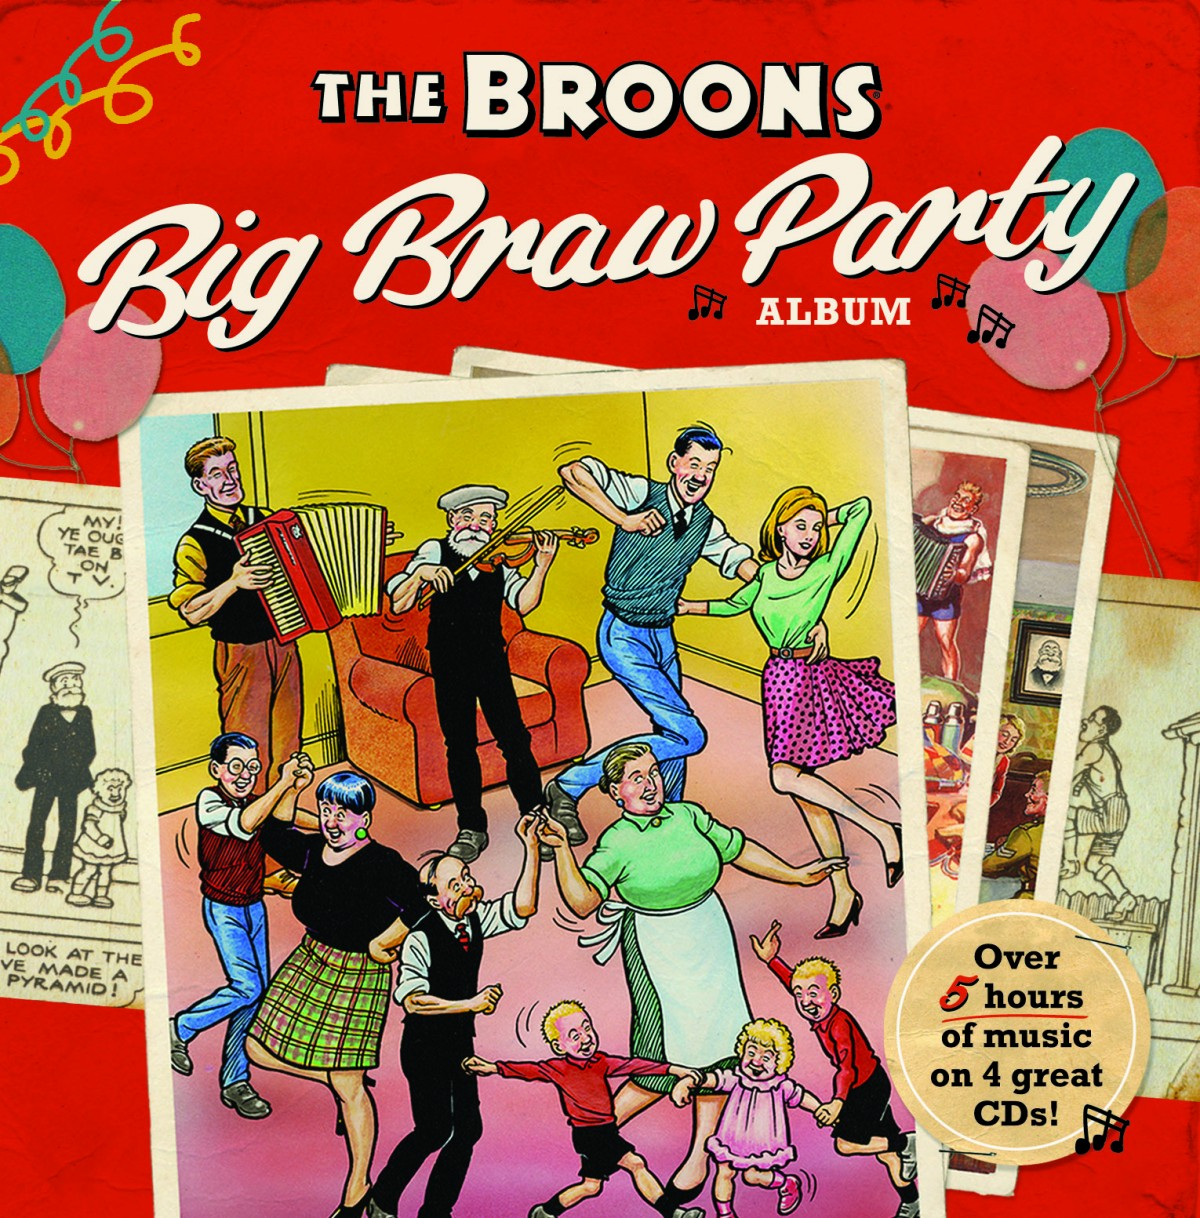 The Broons the braw party albumn